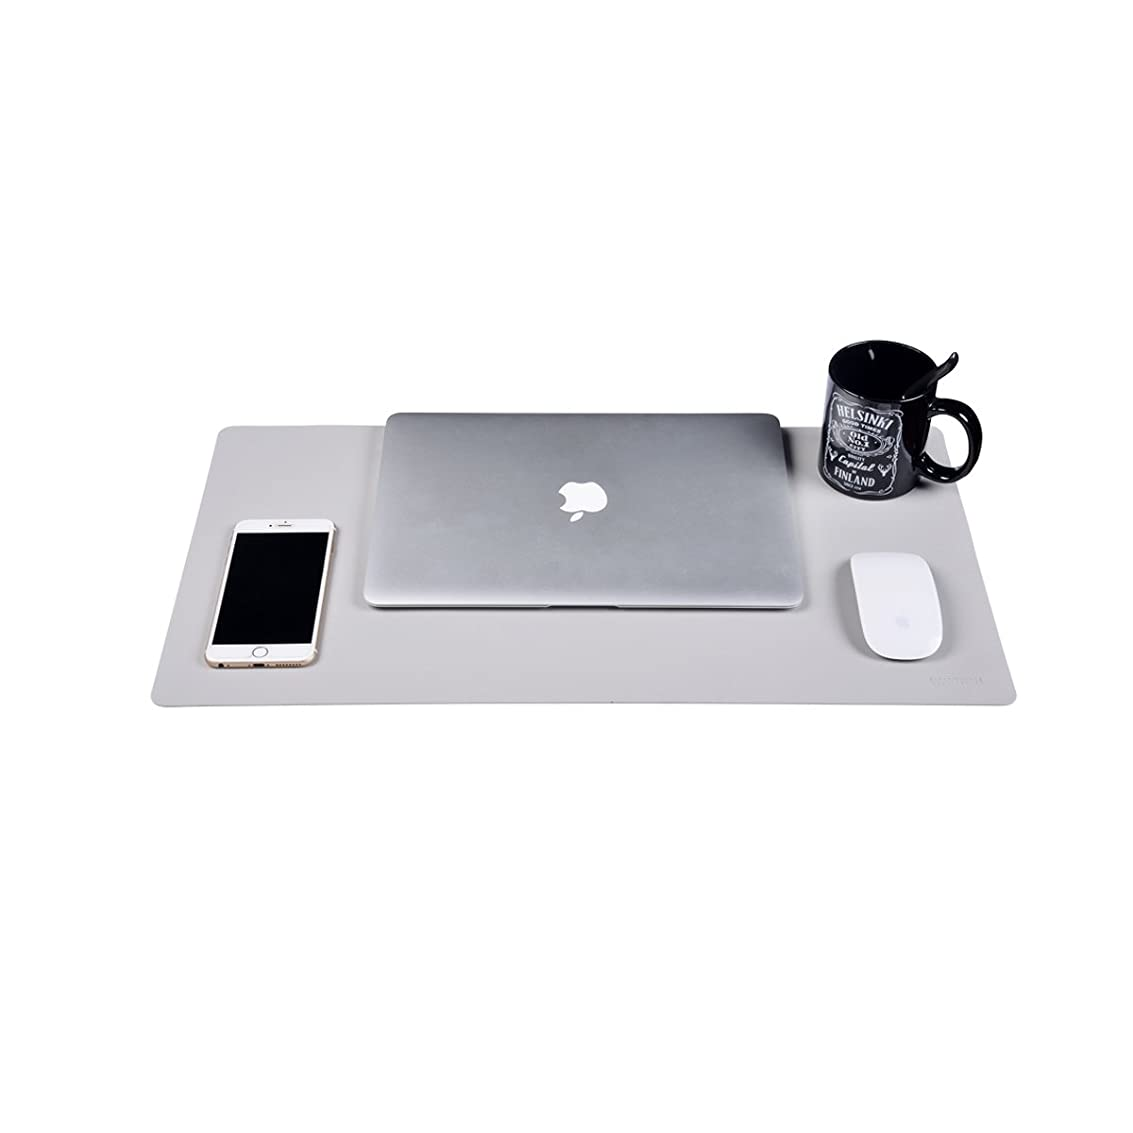 Leather Desk Pad Protecter,Dual Use Desk Writing Mat for Office/Home/School 23.5''12.5''WAYIFON (Grey) rnxpq6208529394